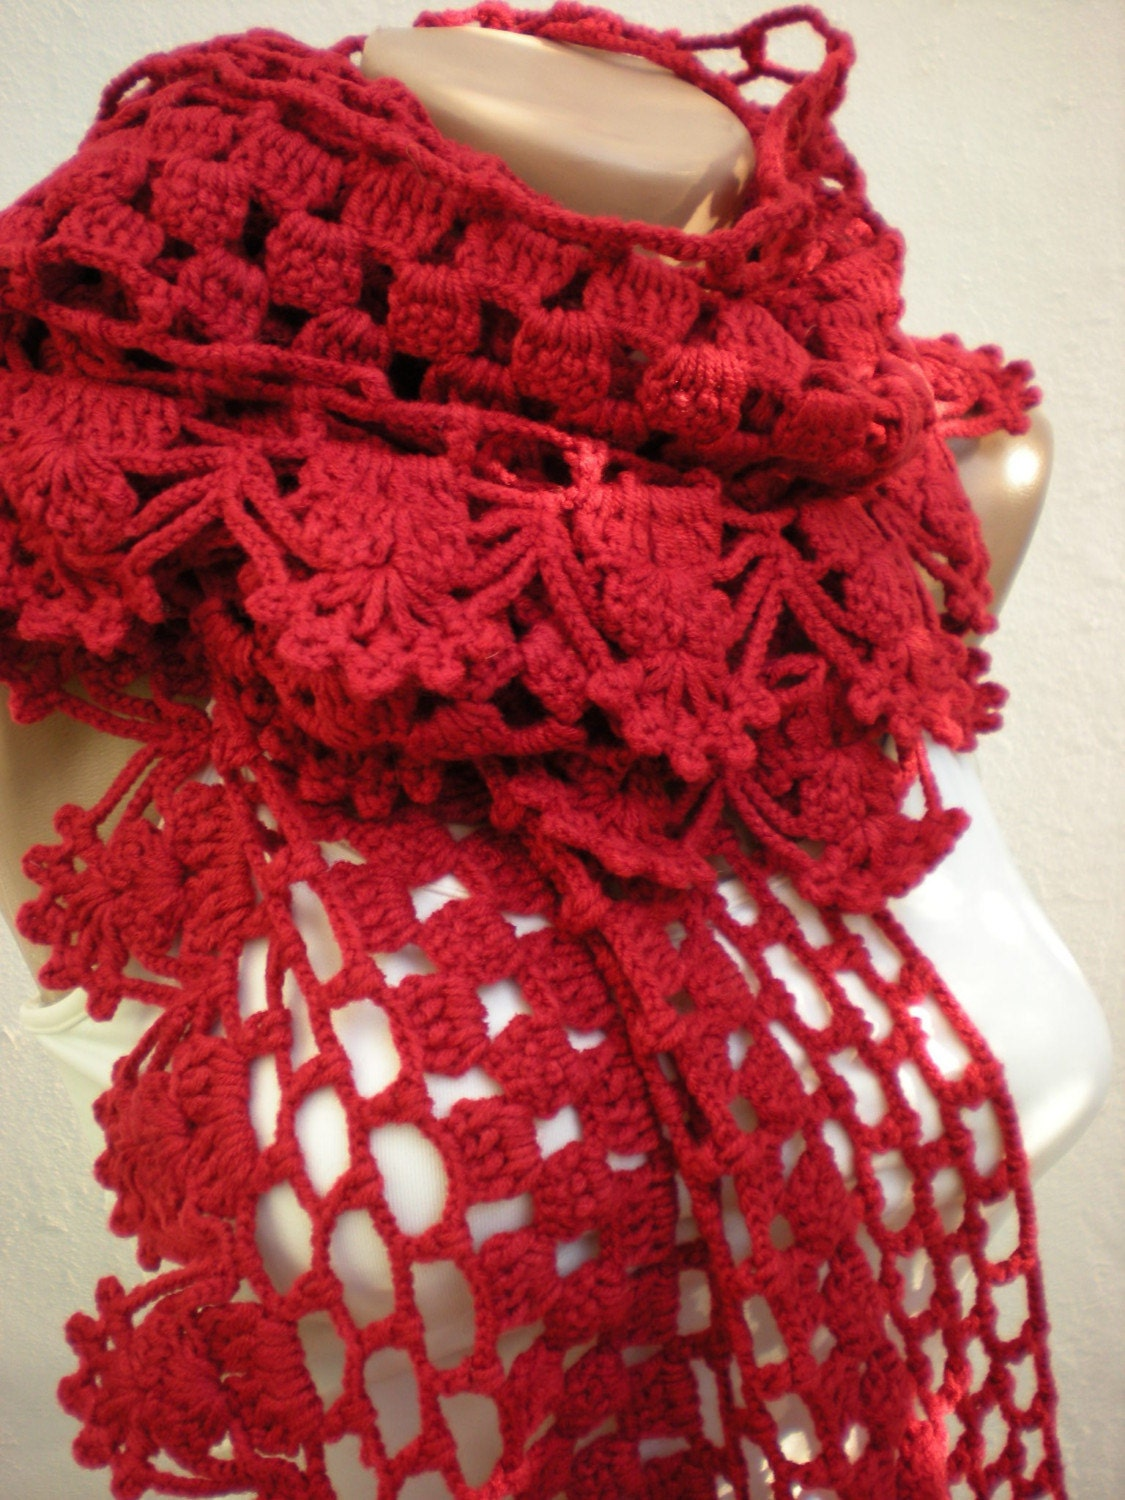 Free Crochet Patterns For Christmas Scarves : ON SALE Holiday Crochet SCarf Valentines Scarf Crochet ...